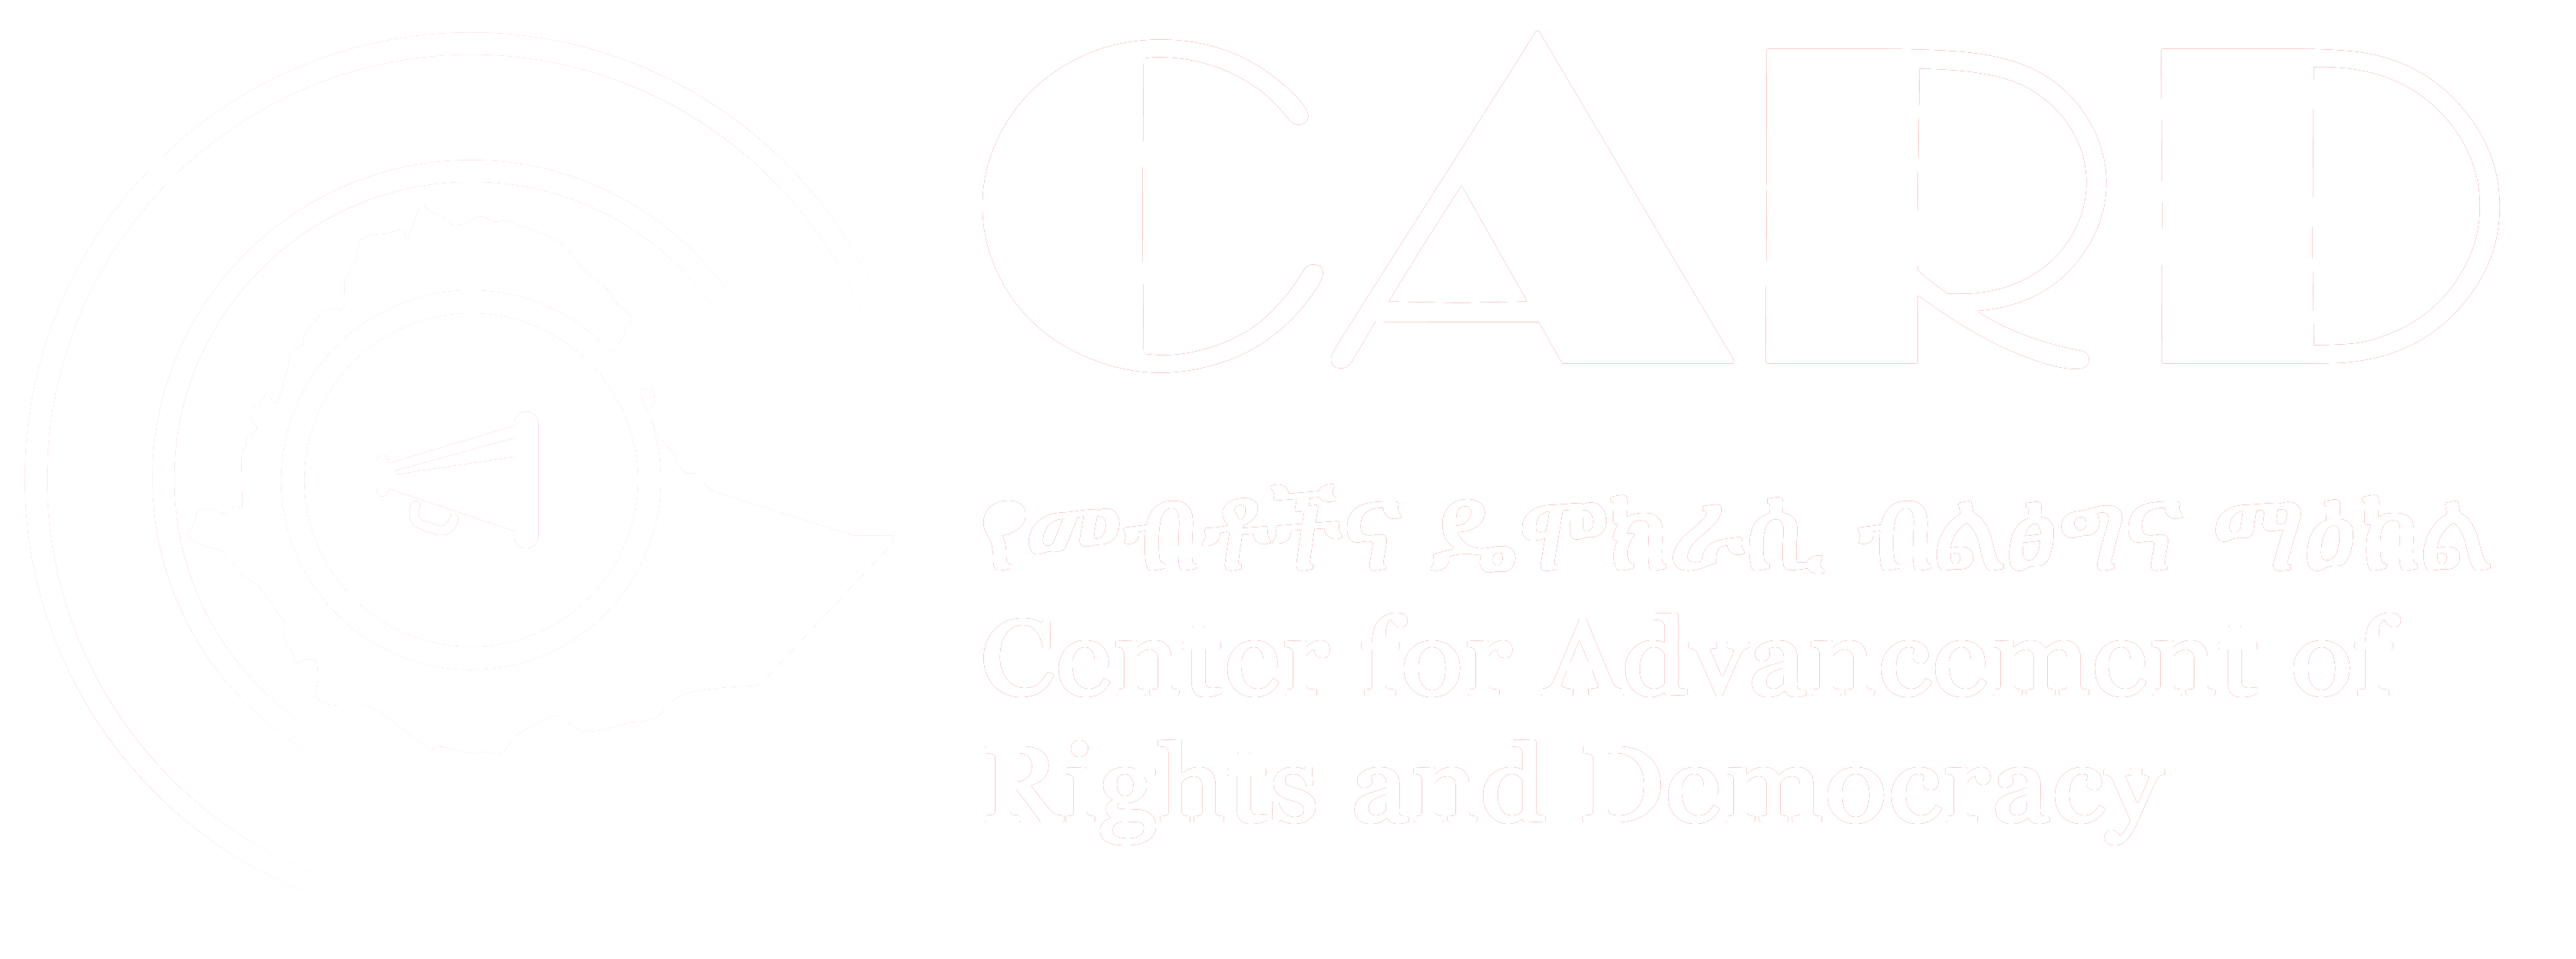 Center for Advancement or Rights and Democracy (CARD)